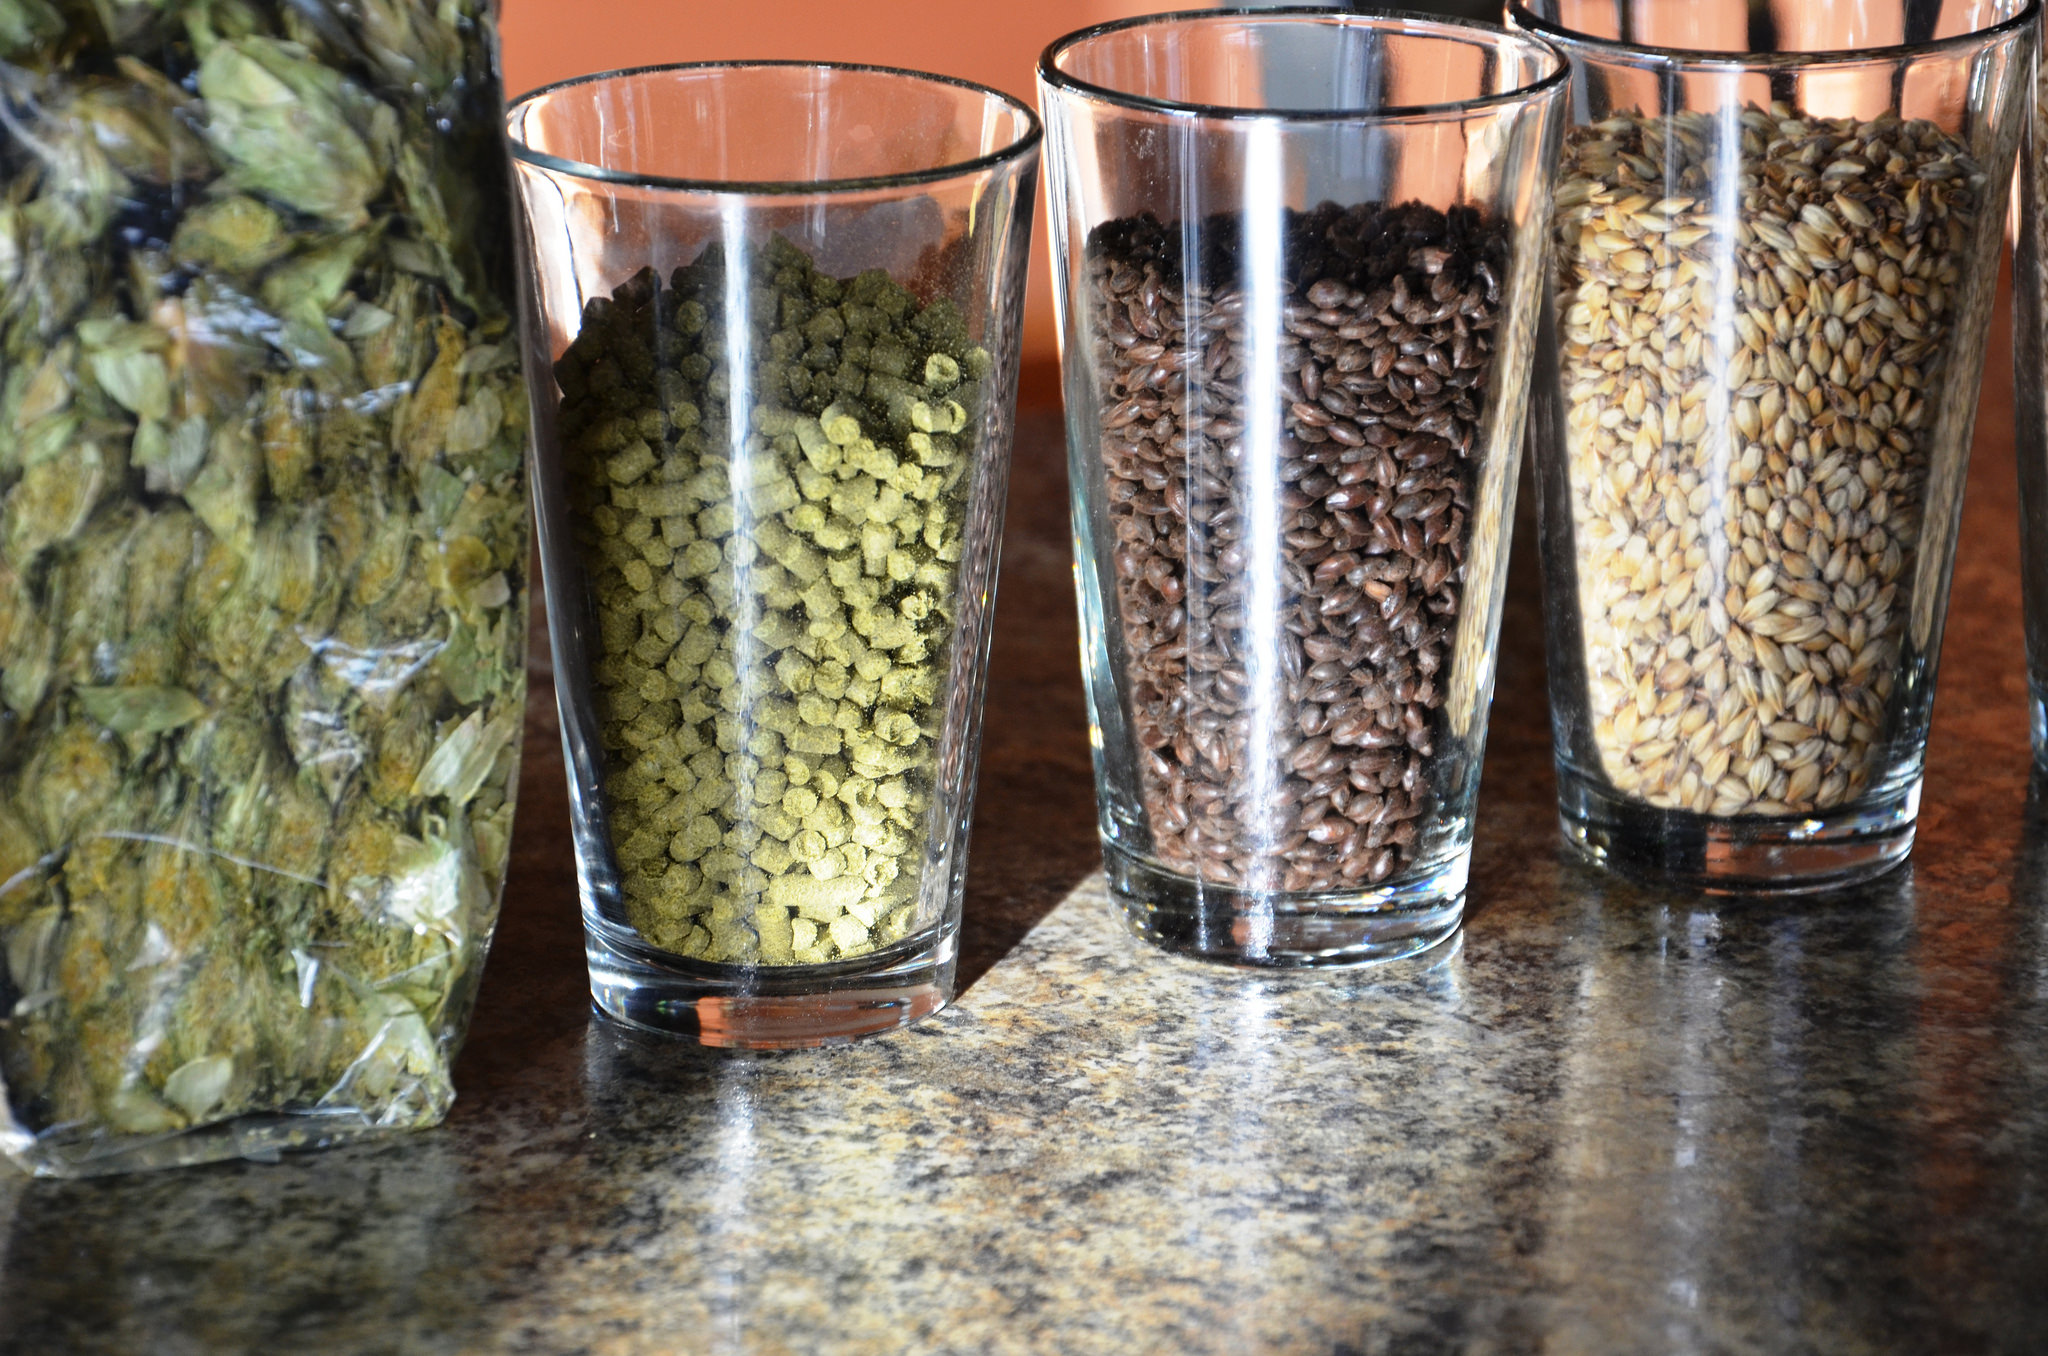 Beer brewing ingredients (Photo: Baker County Tourism)